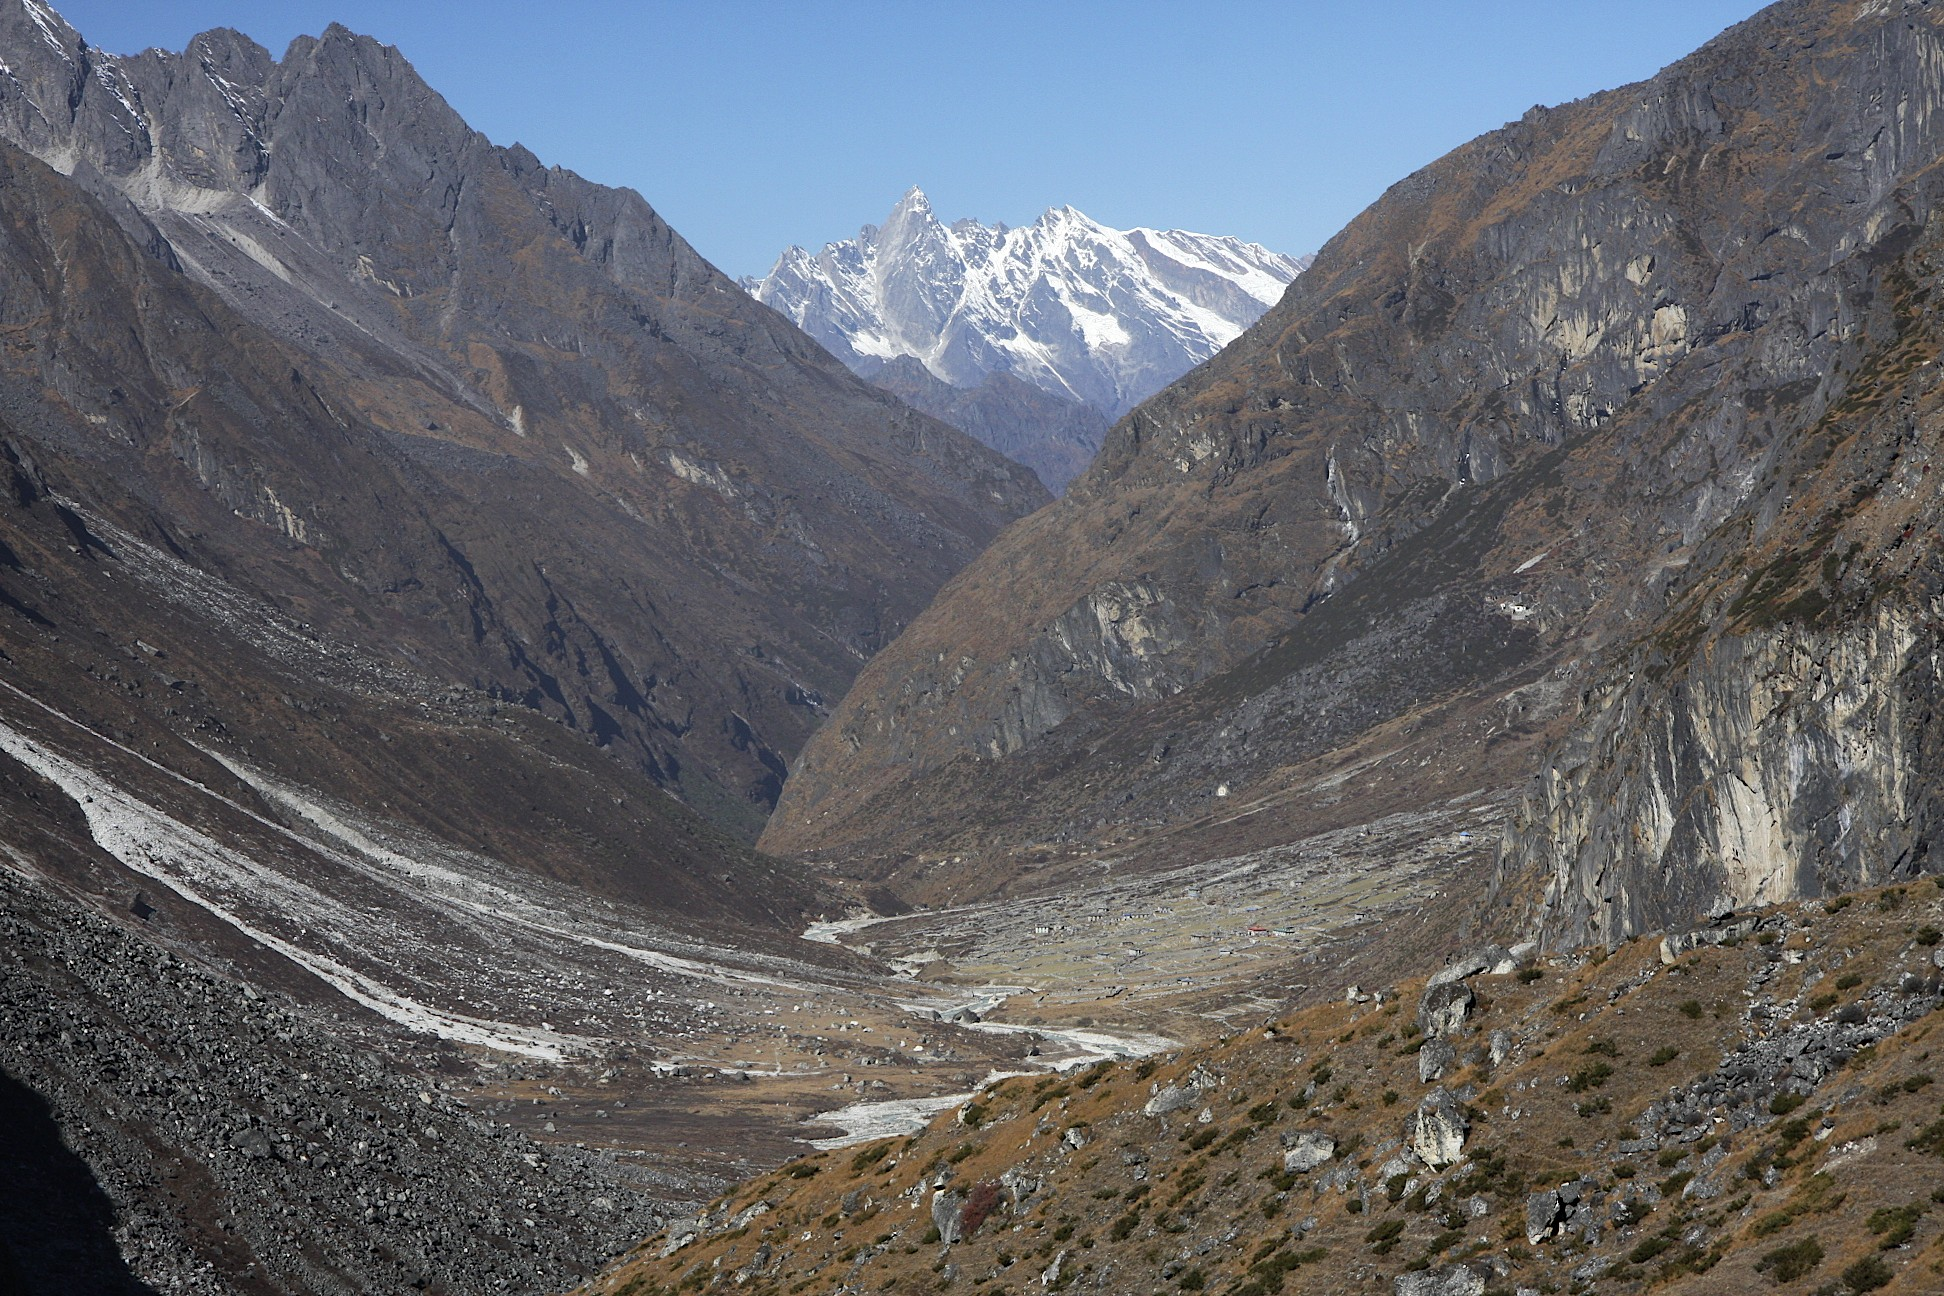 The Rowaling Valley and Jugal Himal on the horizon. The Jugal Himal separates Rowaling from the Langtang region and it is located in China. It is not possible to cross from Rowaling to Langtang via Jugal and the GHT requires a long detour south and then back north to the Langtang.